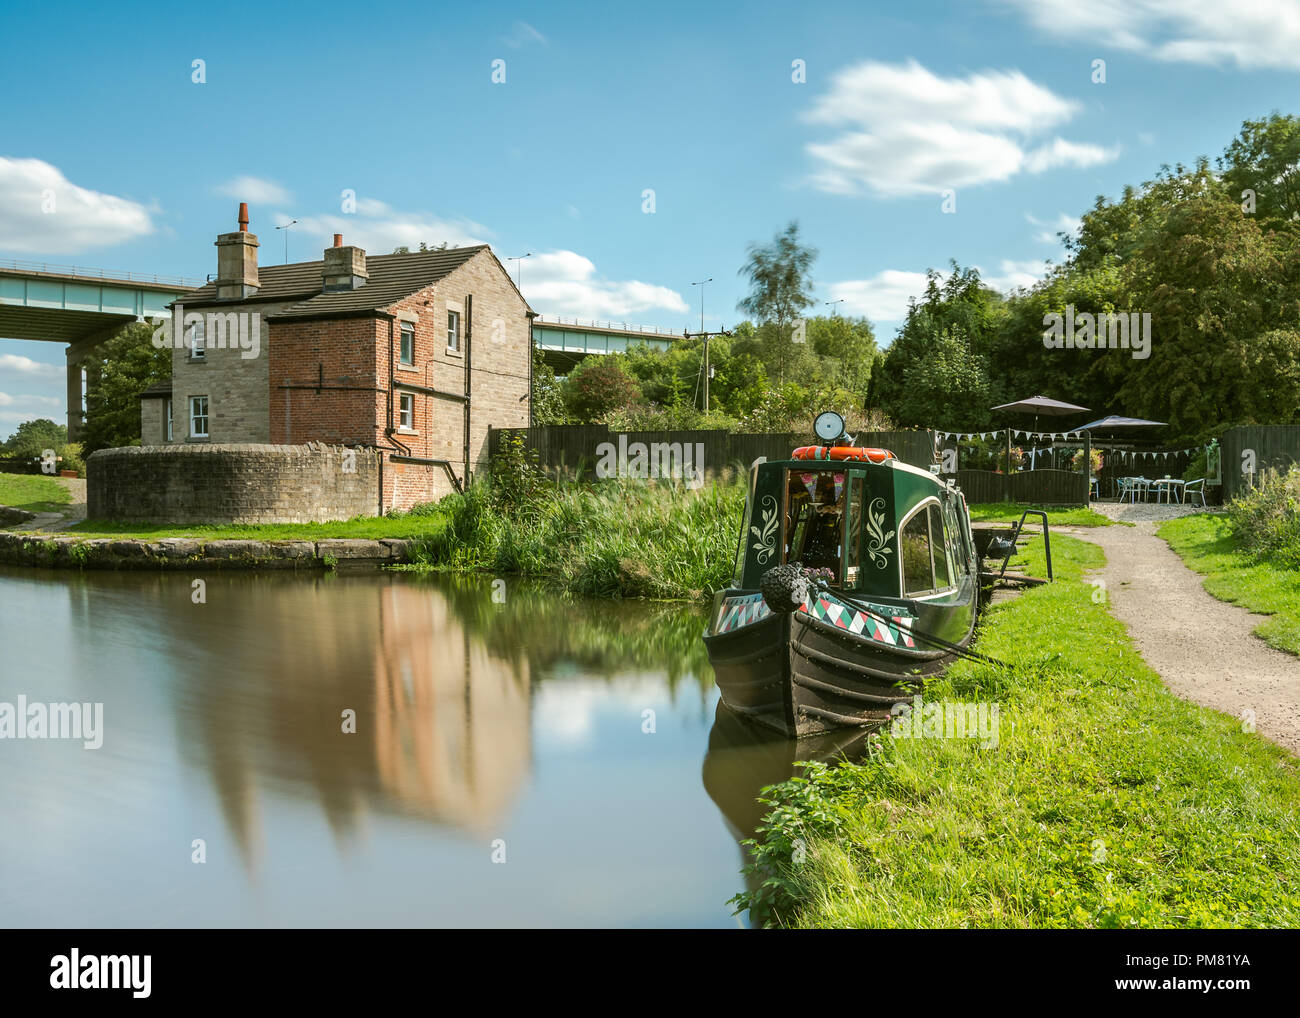 GATHURST, WIGAN, UK AUGUST 31 2018: A photograph documenting a converted canal narrowboat acts as a tearoom with a small outdoor garden seating area o - Stock Image